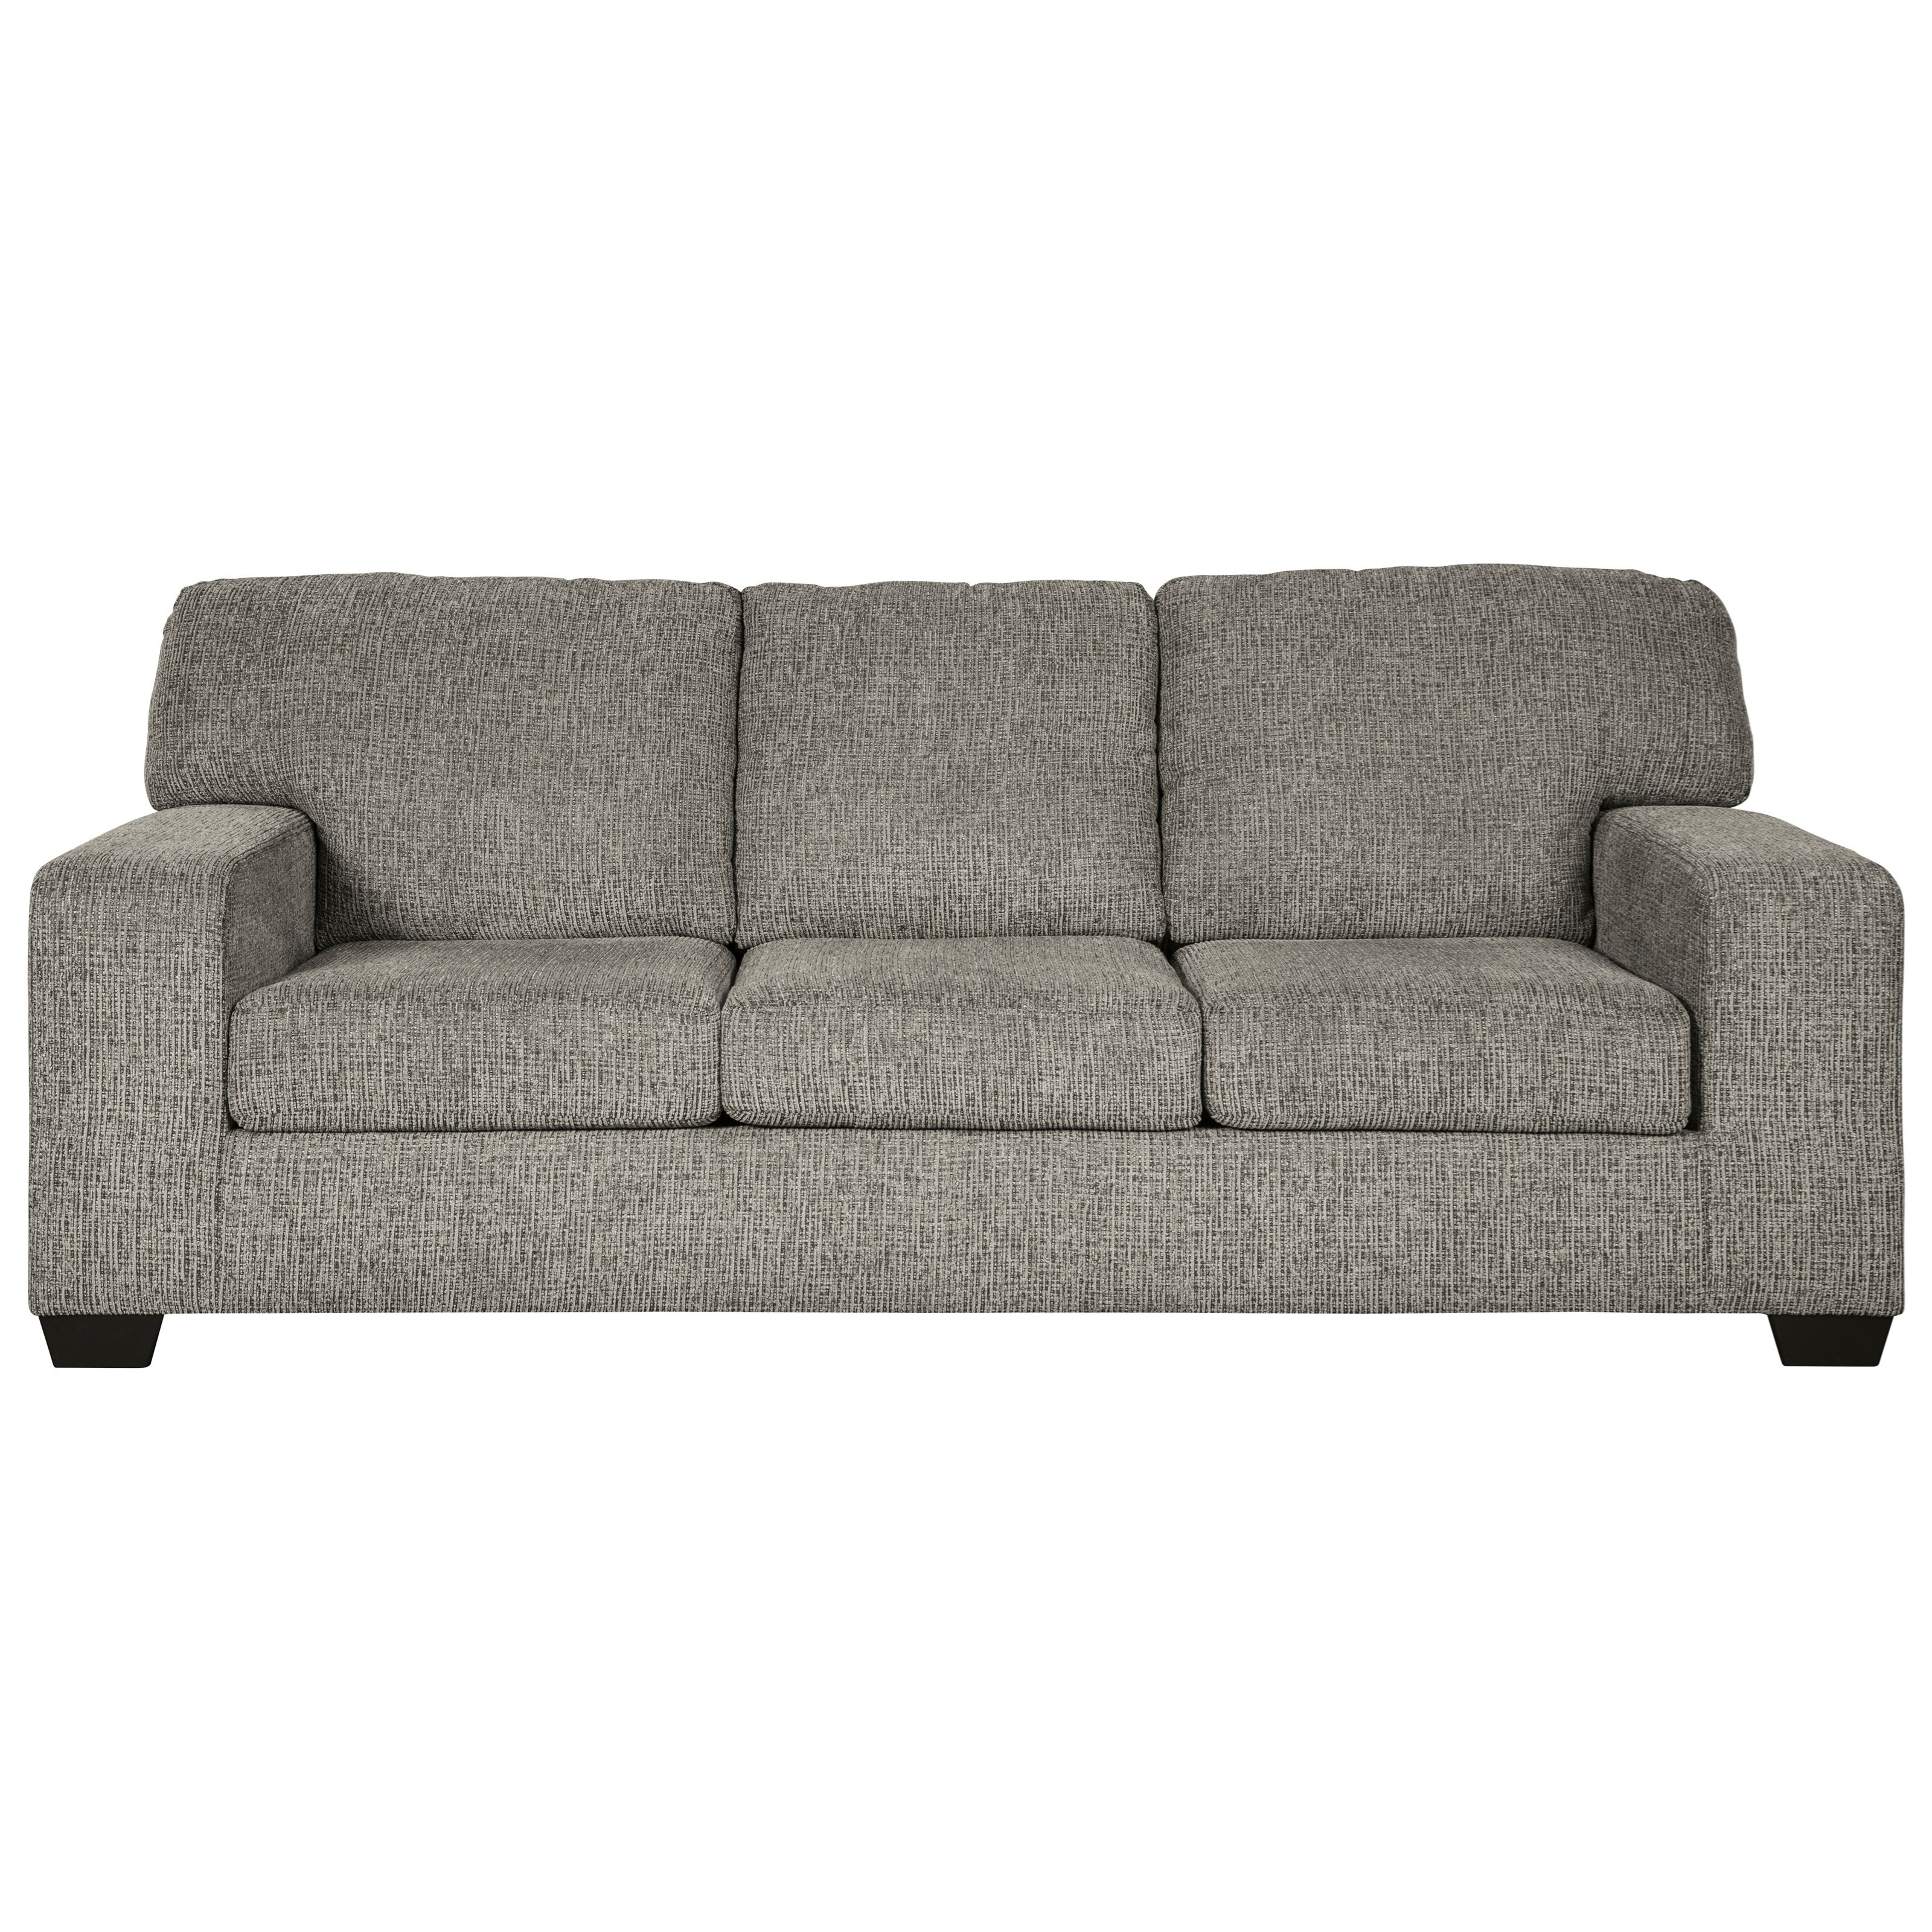 Cool Termoli Contemporary Queen Sofa Sleeper With Track Arms Memory Foam Mattress By Signature Design By Ashley At Sam Levitz Furniture Home Interior And Landscaping Ologienasavecom